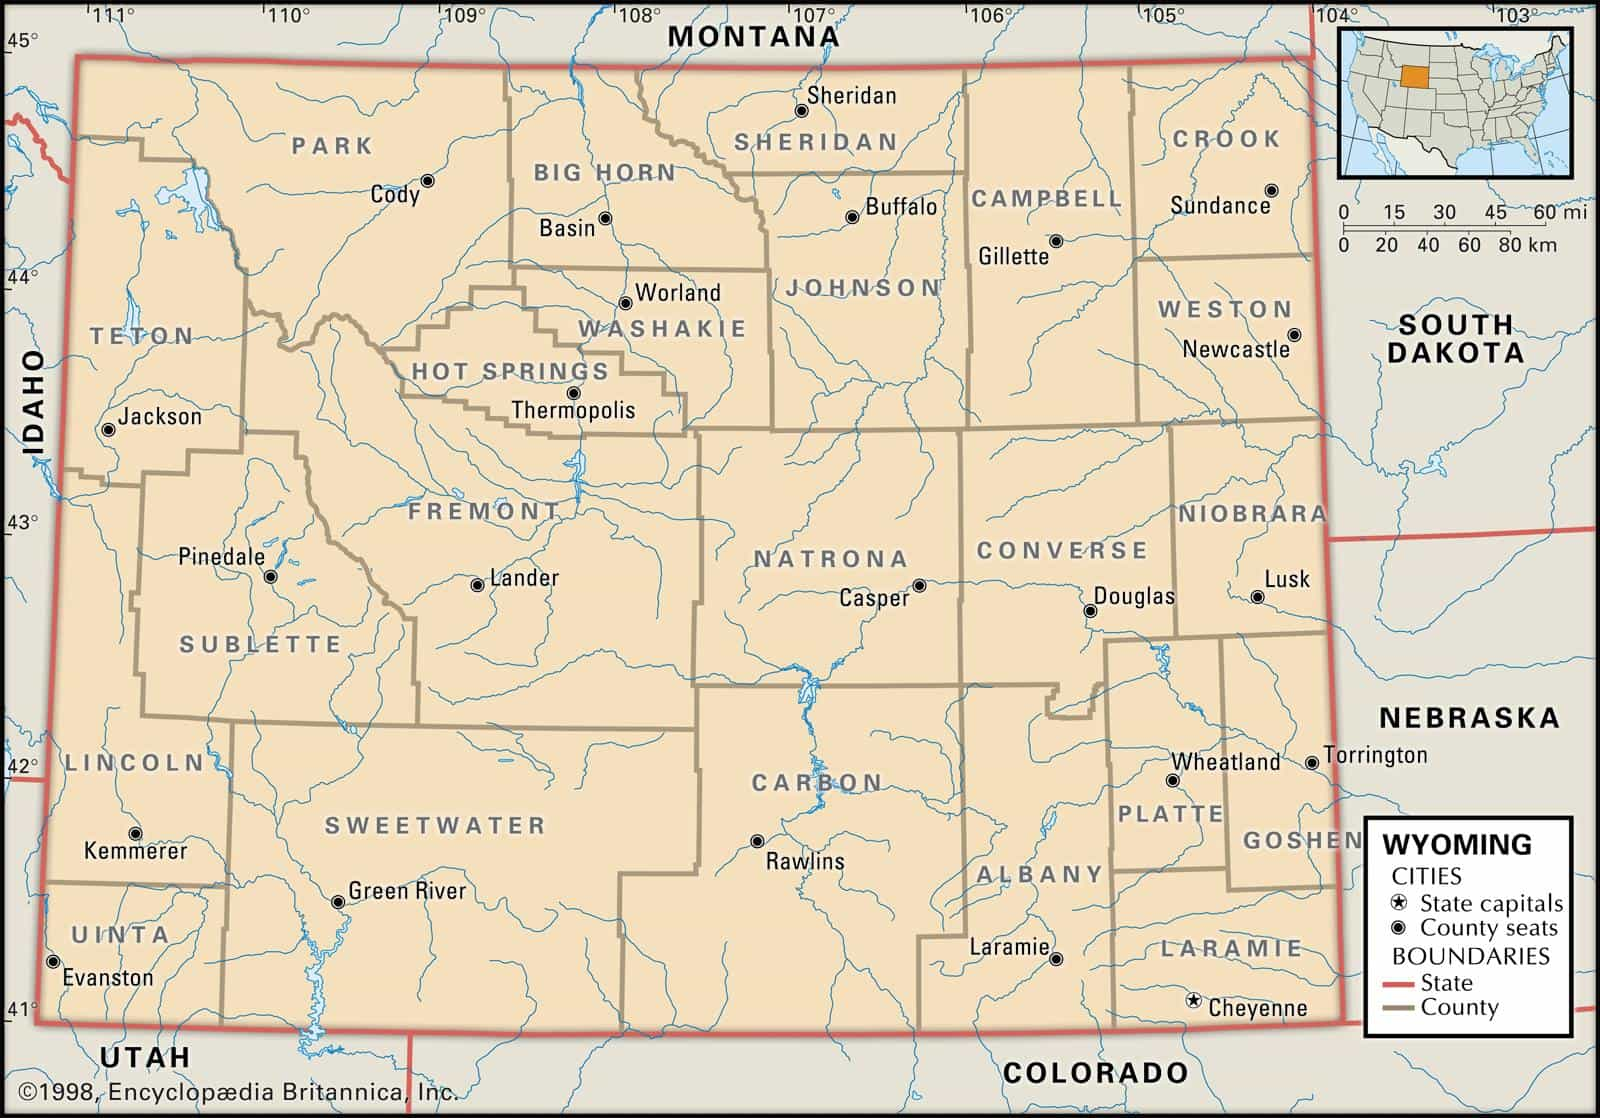 Historical Facts Of Wyoming Counties Guide